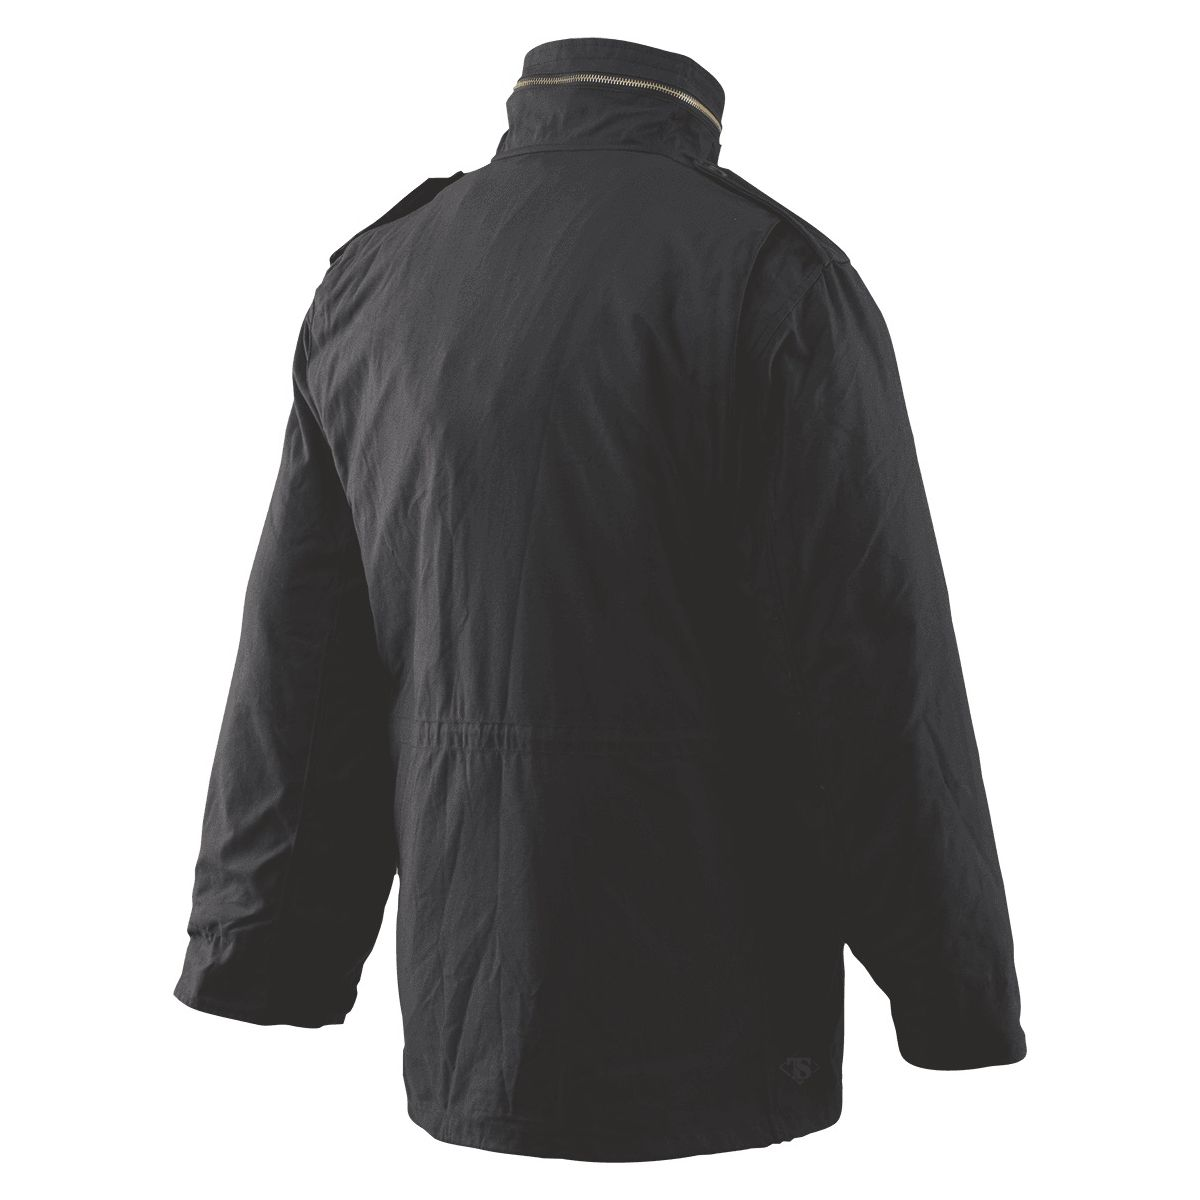 Jacket M65 with liner BLACK TRU-SPEC 24400 L-11